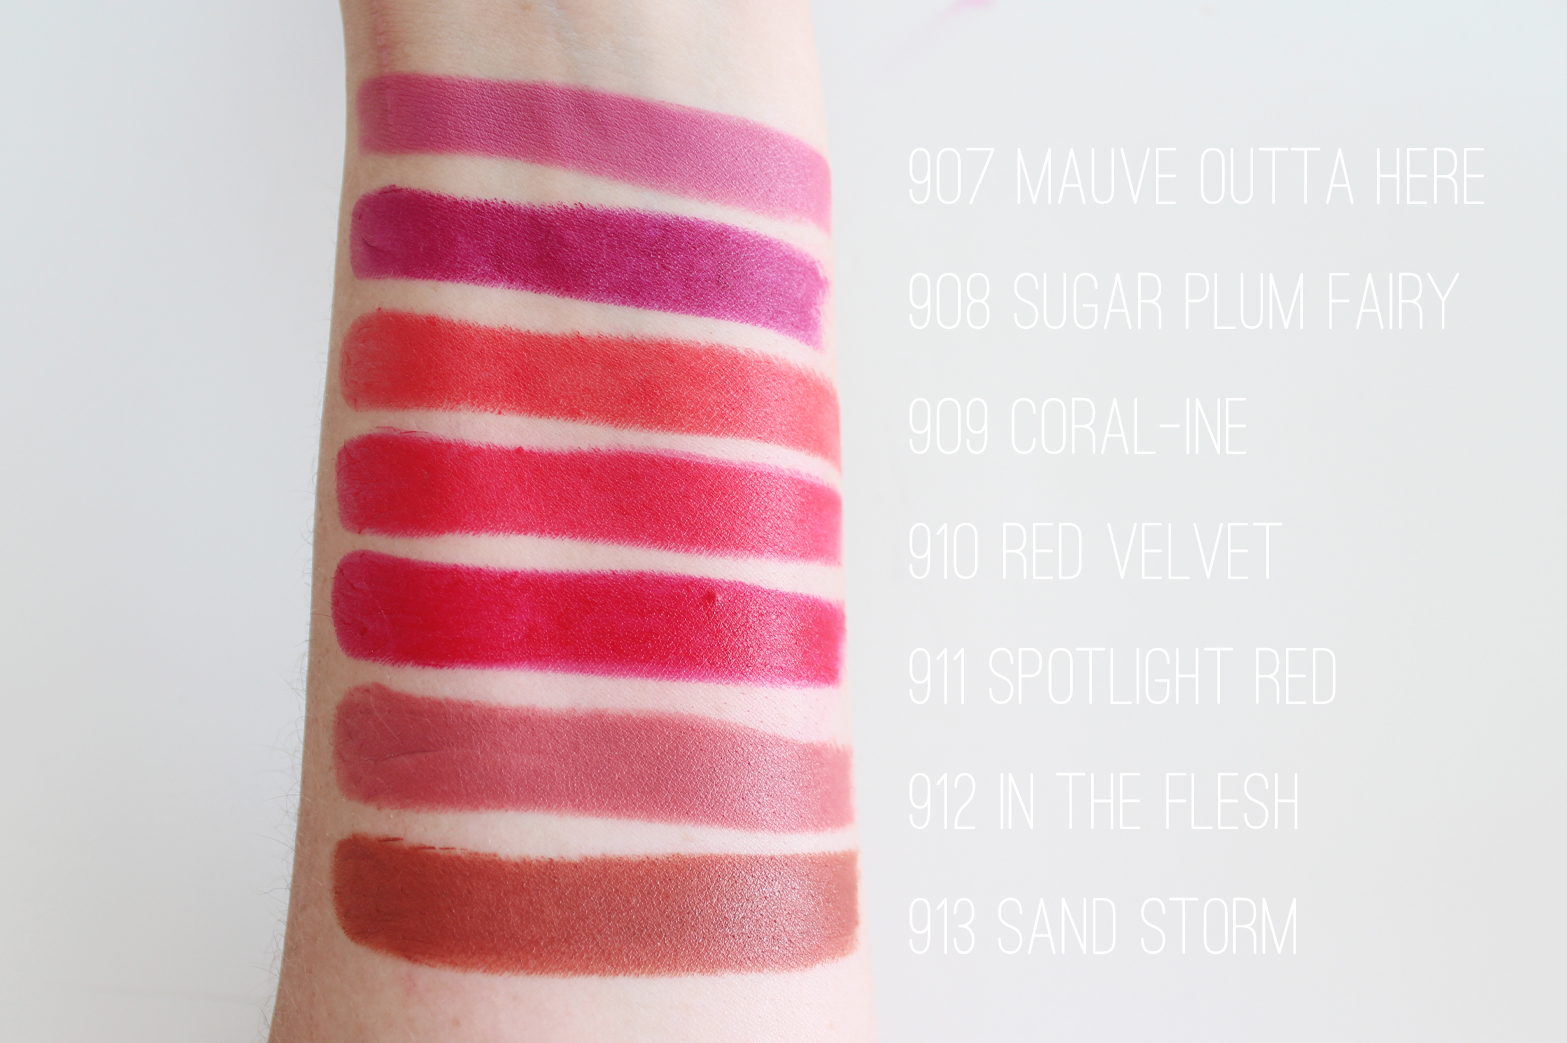 WET N WILD | MegaLast Lipsticks - Complete 26 Shade Collection + Swatches - CassandraMyee